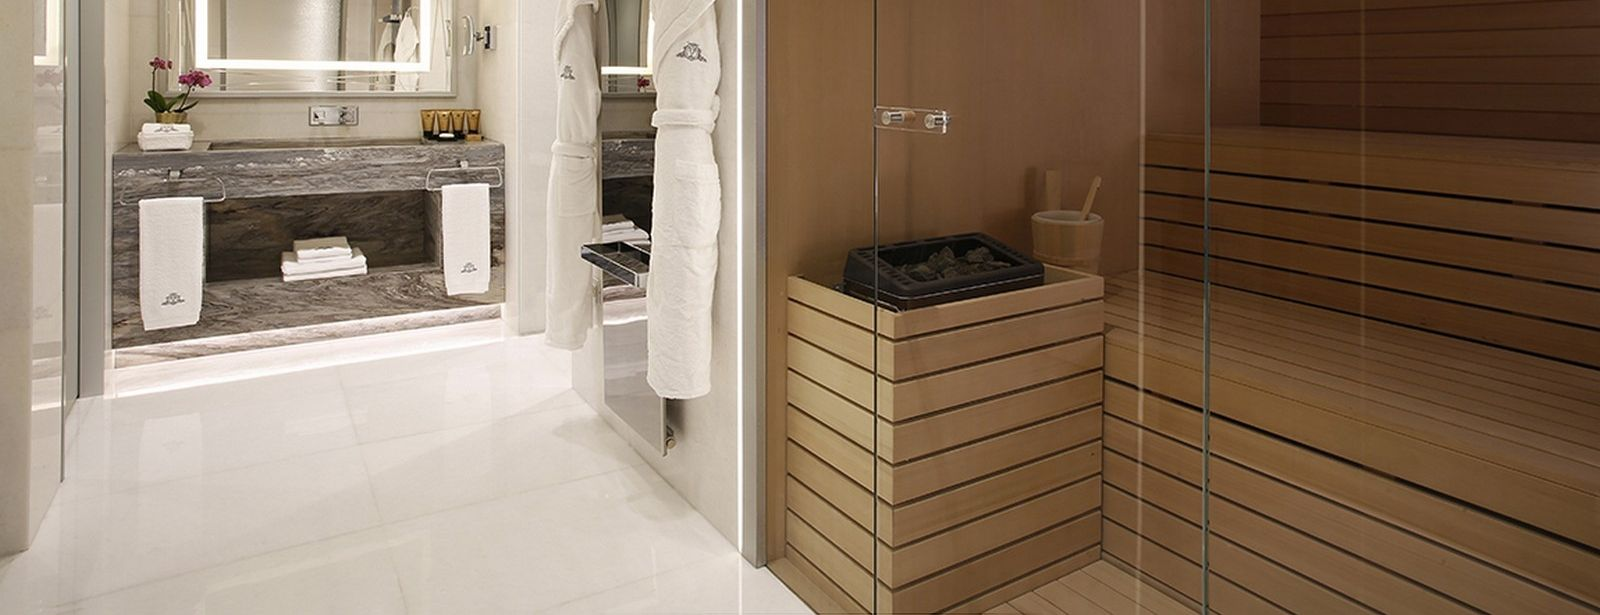 Katara Suite bathroom